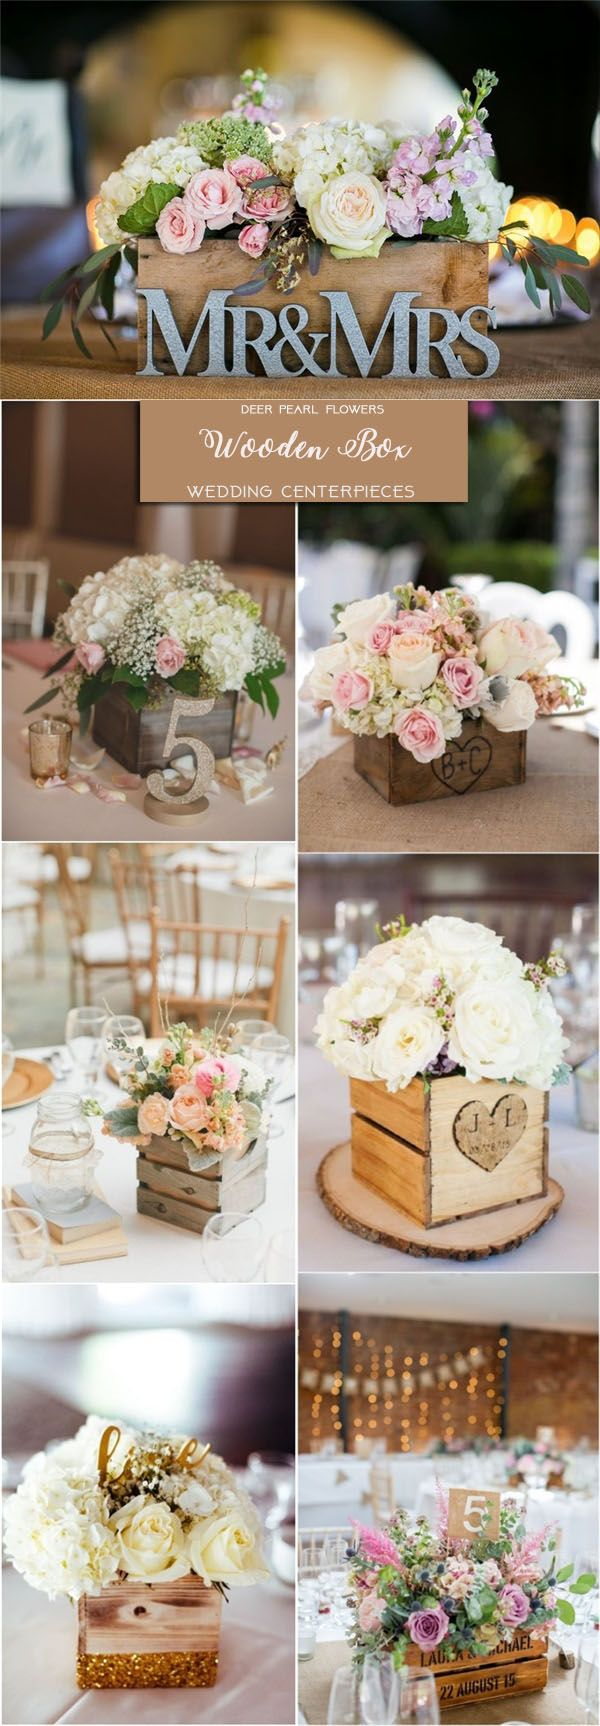 rustic wedding decorations cheap 25 best ideas about wedding centerpieces on 7212